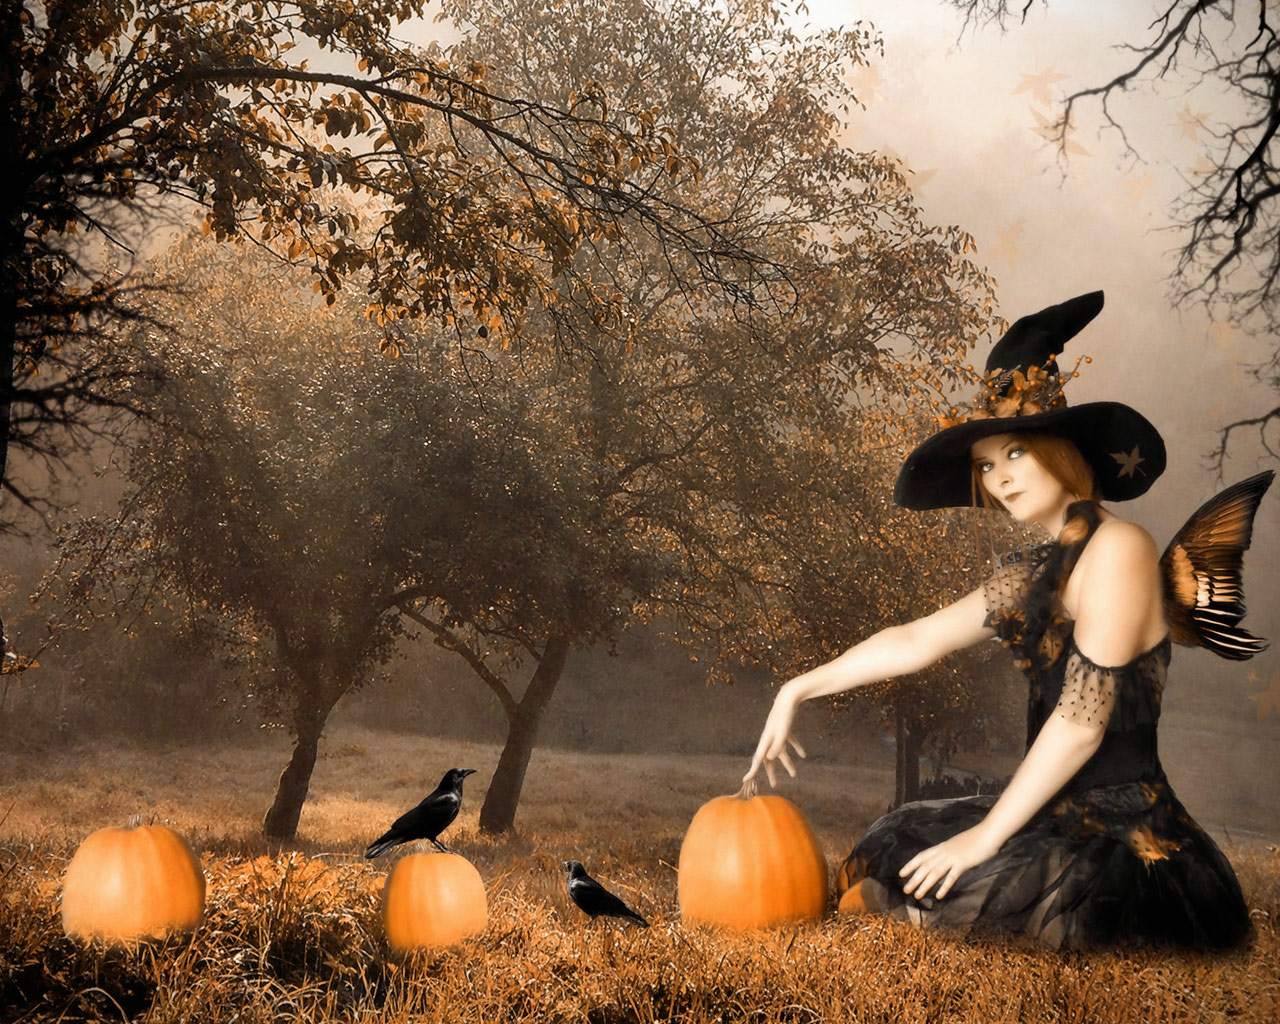 All Hallows Eve Witch 1280x1024